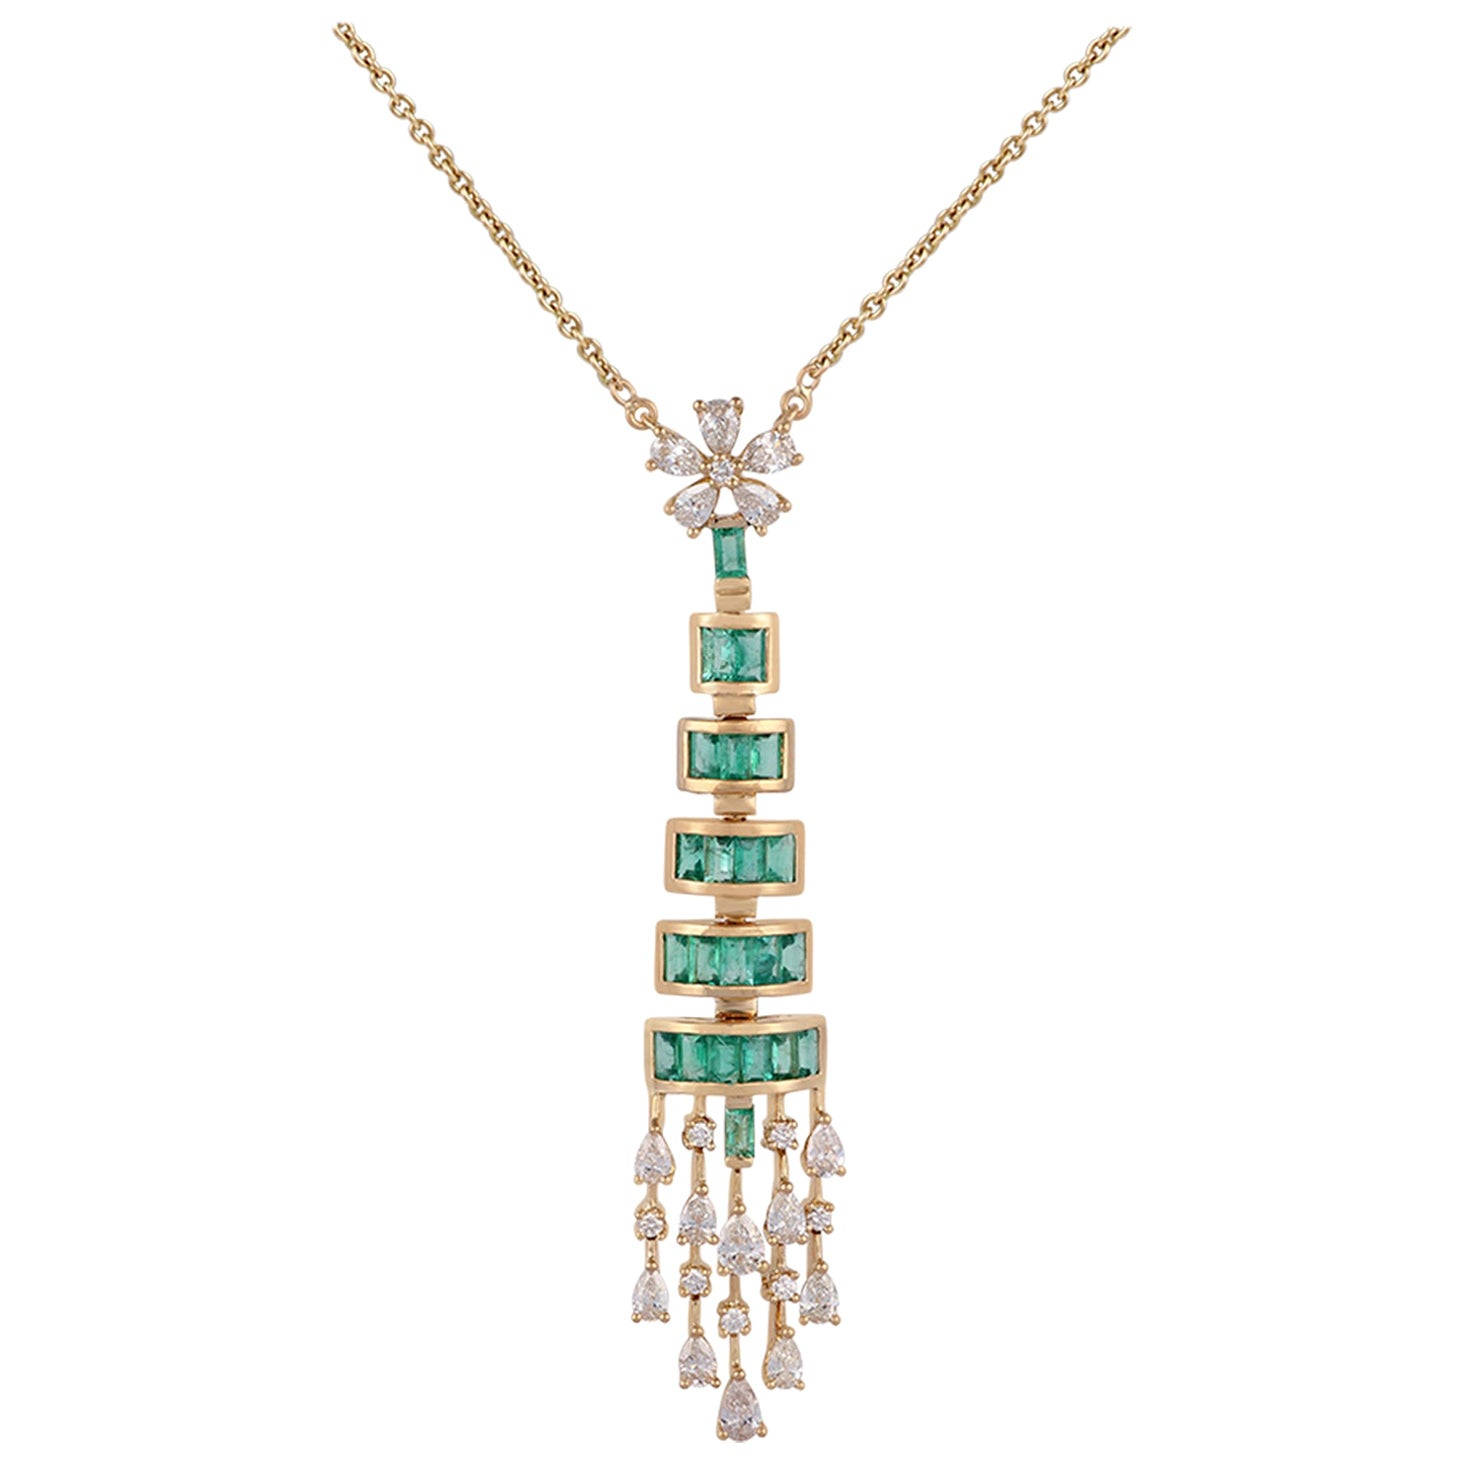 Emerald and Diamond Pendant Necklace Studded in 18 Karat Yellow Gold